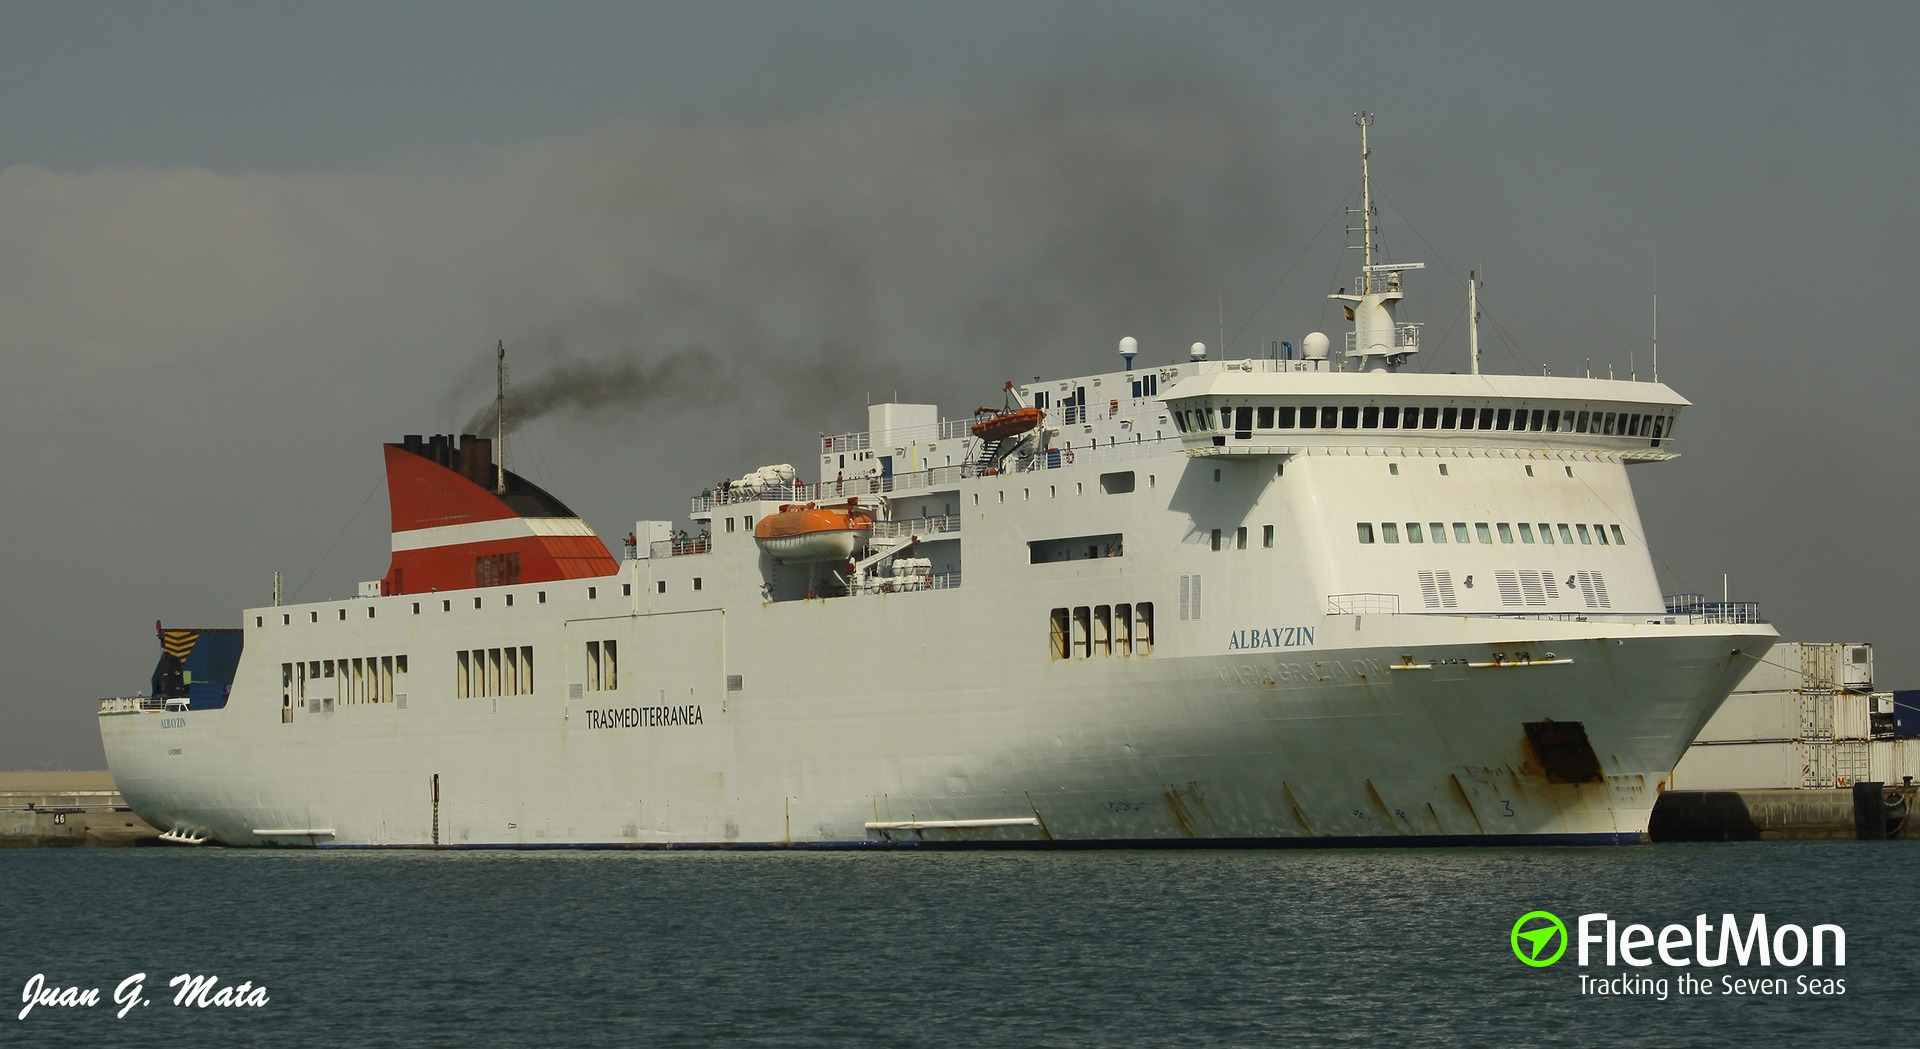 Transmediterranea ferry disabled approaching Canary Islands